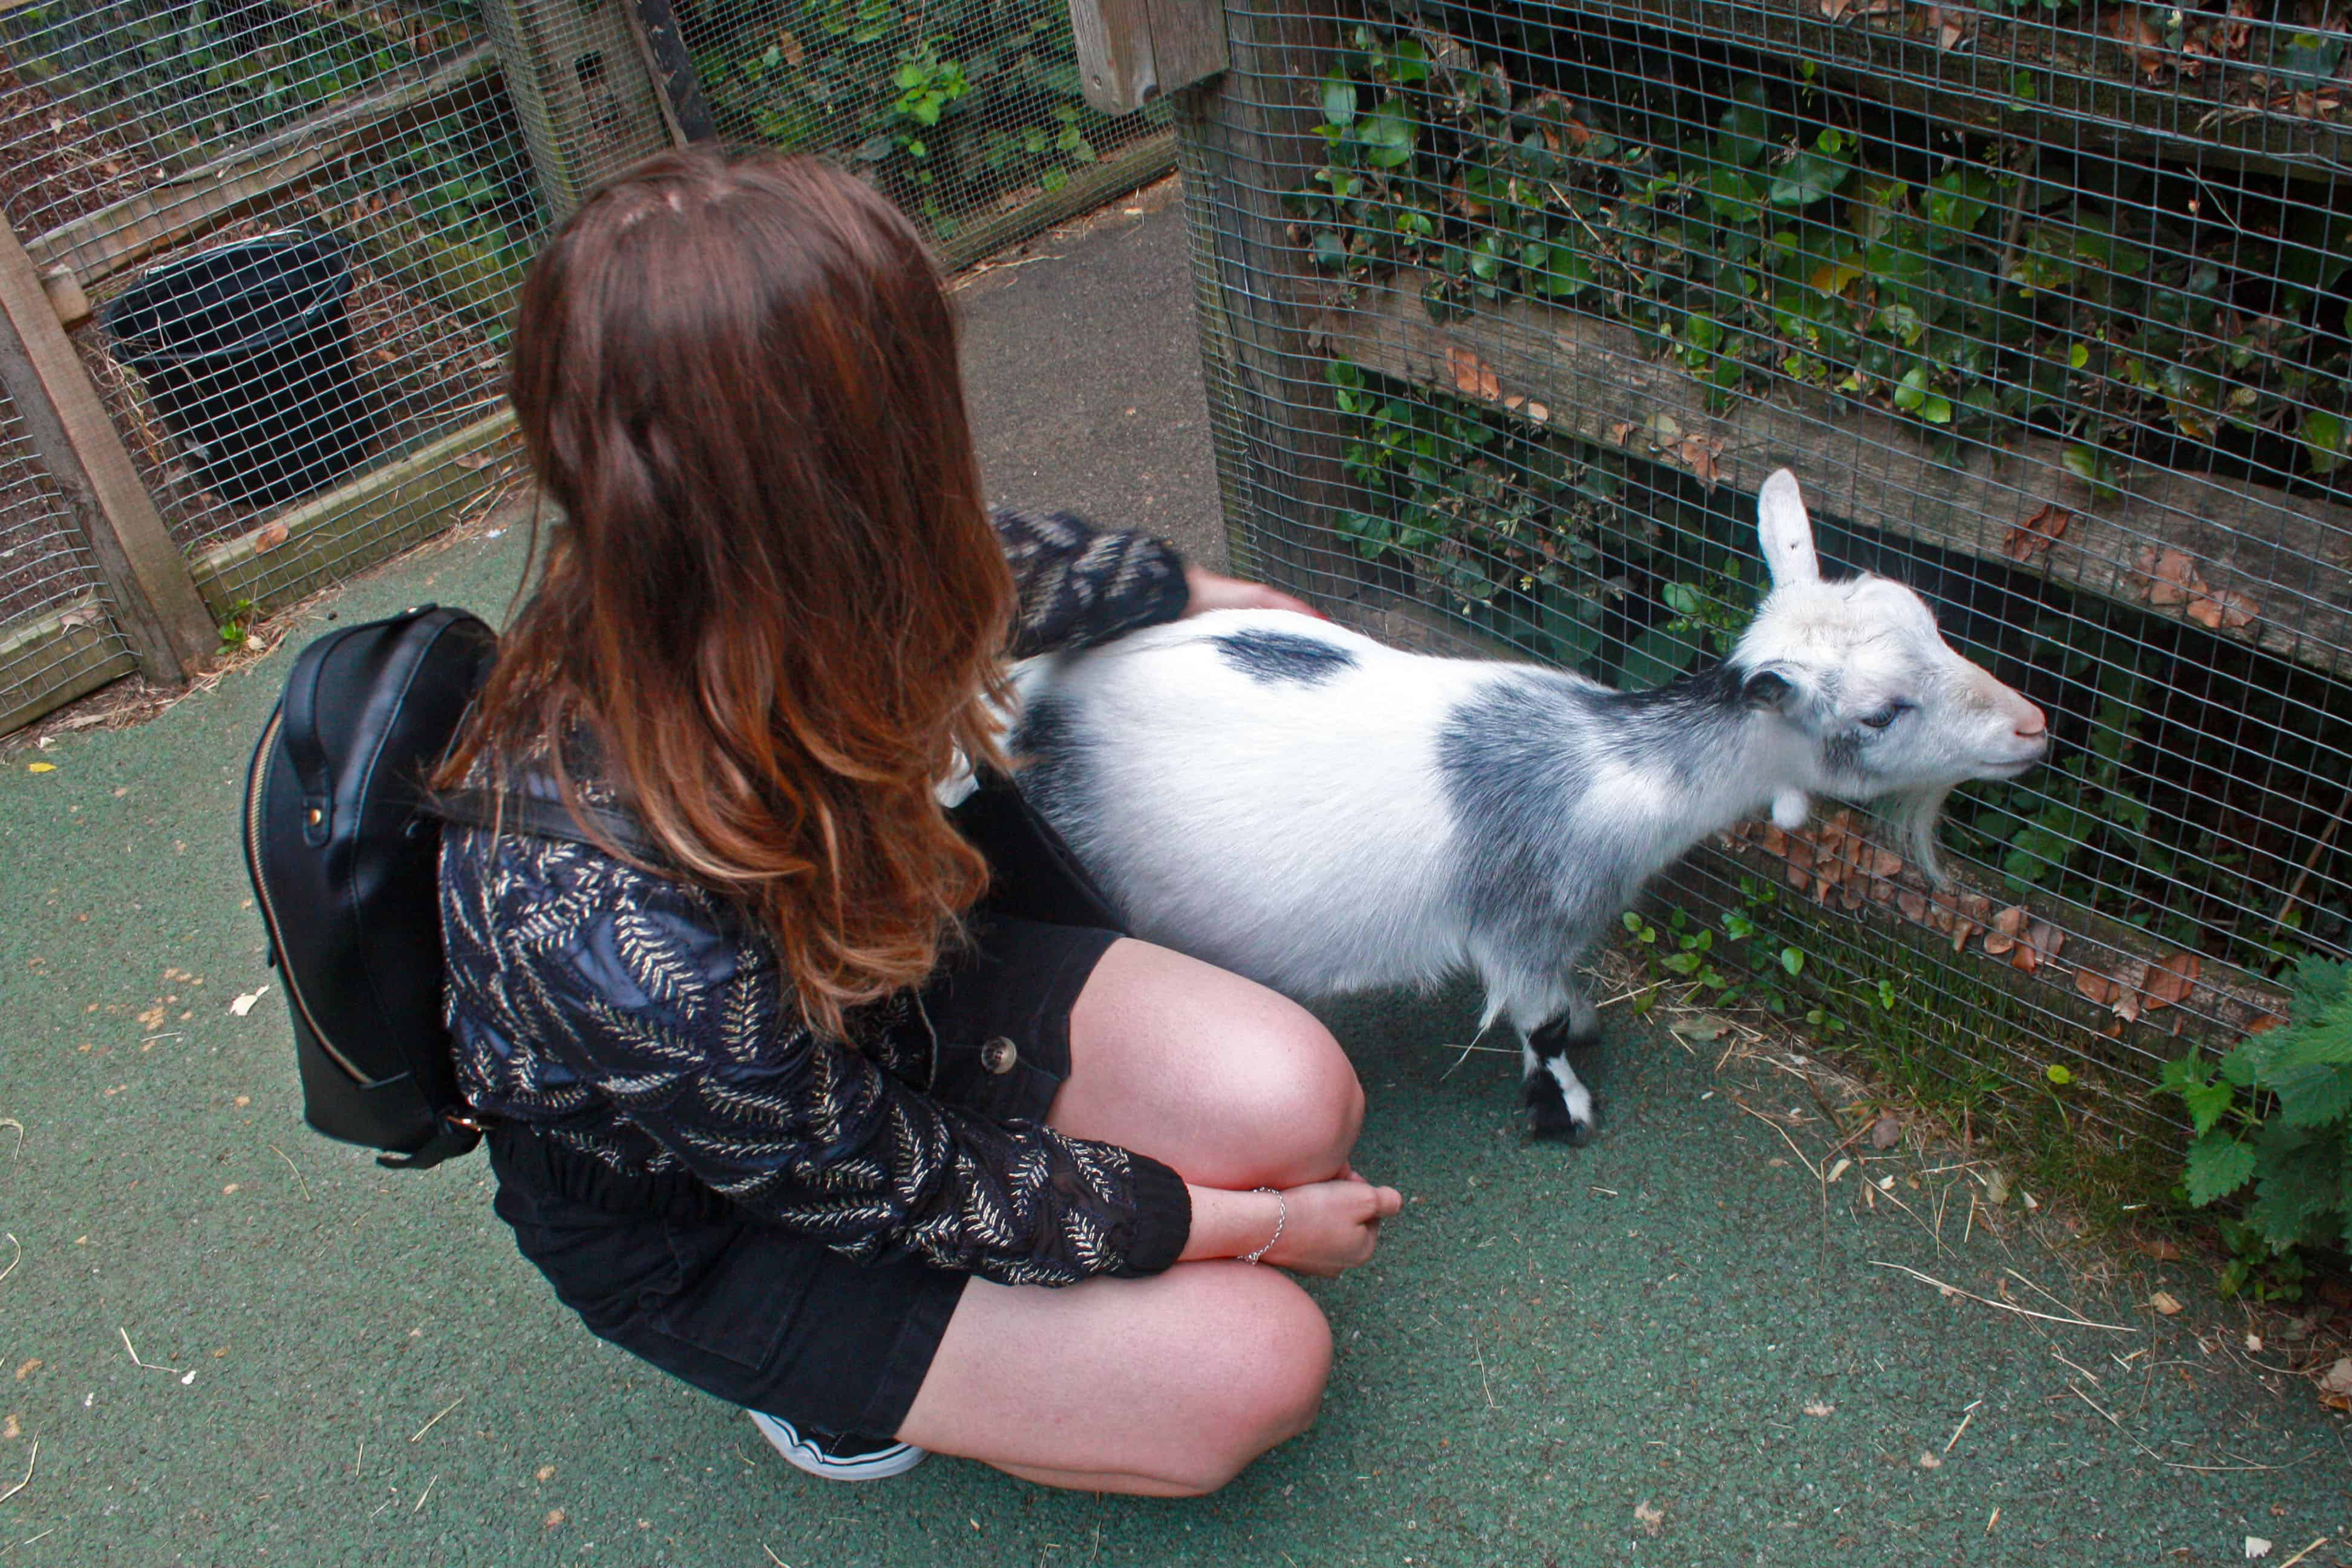 With a goat at London Zoo